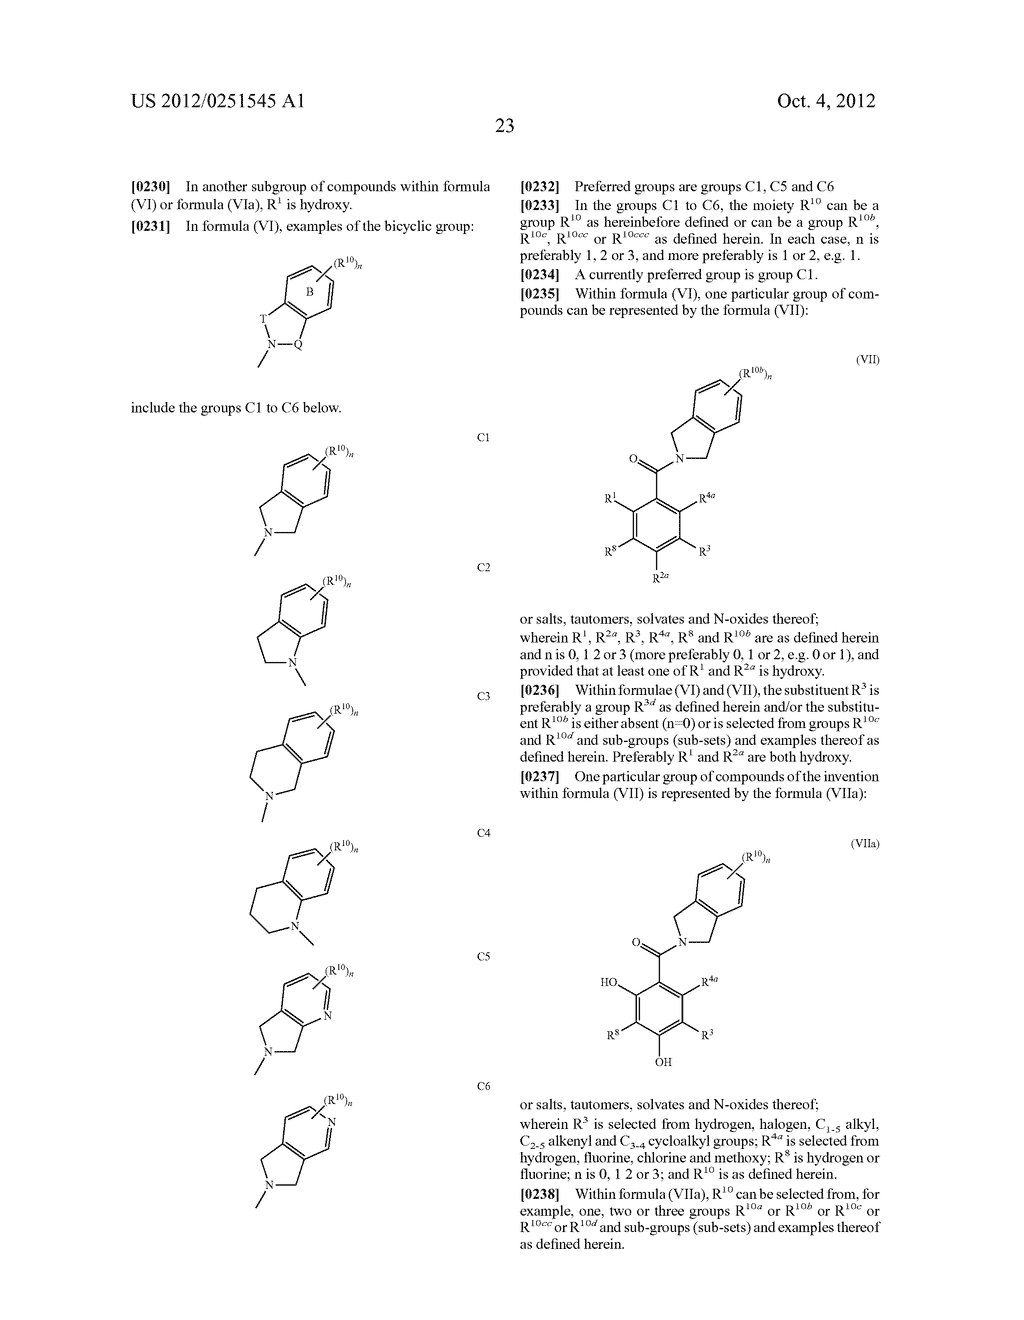 Therapeutic Combinations Of Hydroxybenzamide Derivatives As Inhibitors Of     HSP90 - diagram, schematic, and image 24